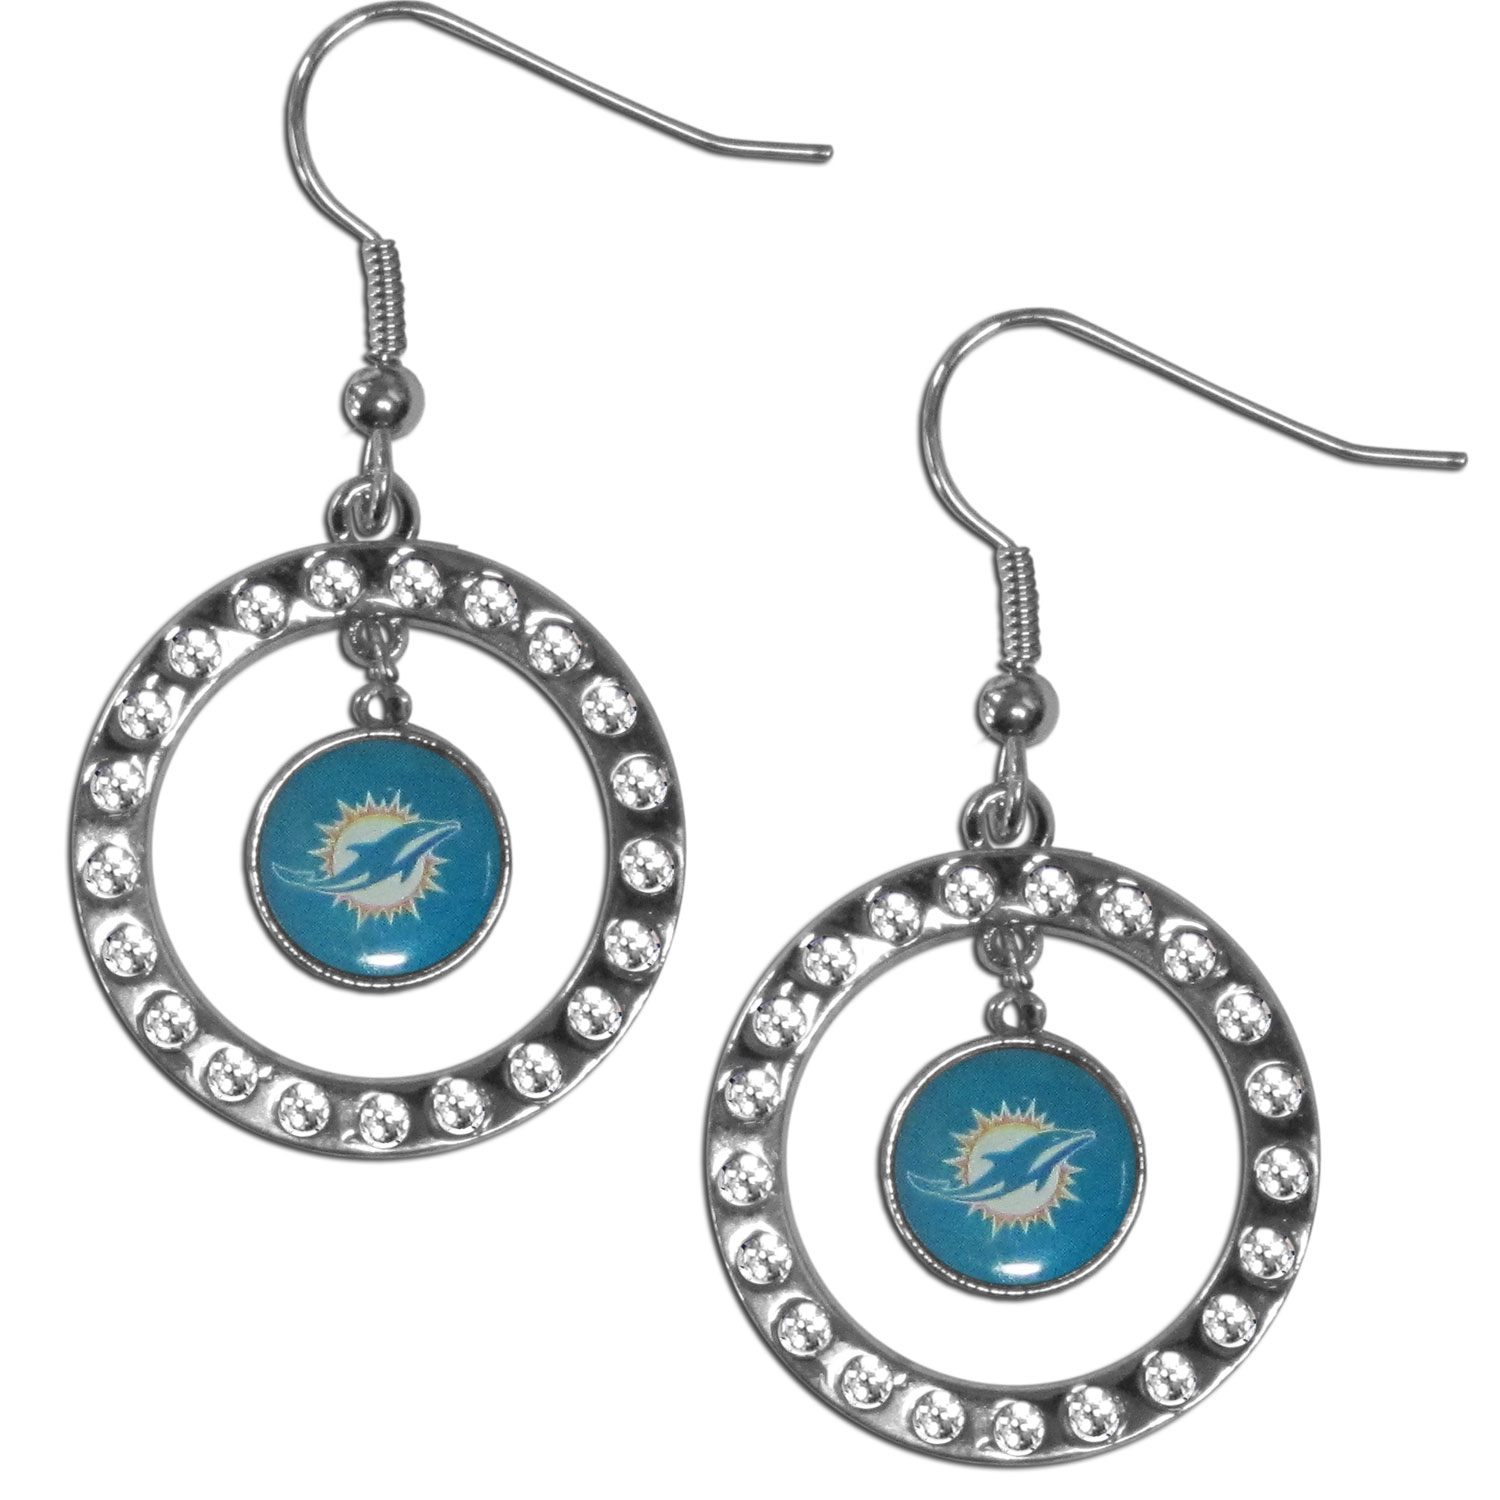 Miami Dolphins Rhinestone Hoop Earrings - Our officially licensed rhinestone hoop earrings comes on an hypo-allergenic fishhook posts  and features a hoop covered in rhinestones with a high polish chrome finish and a Miami Dolphins logo dangling in the center.